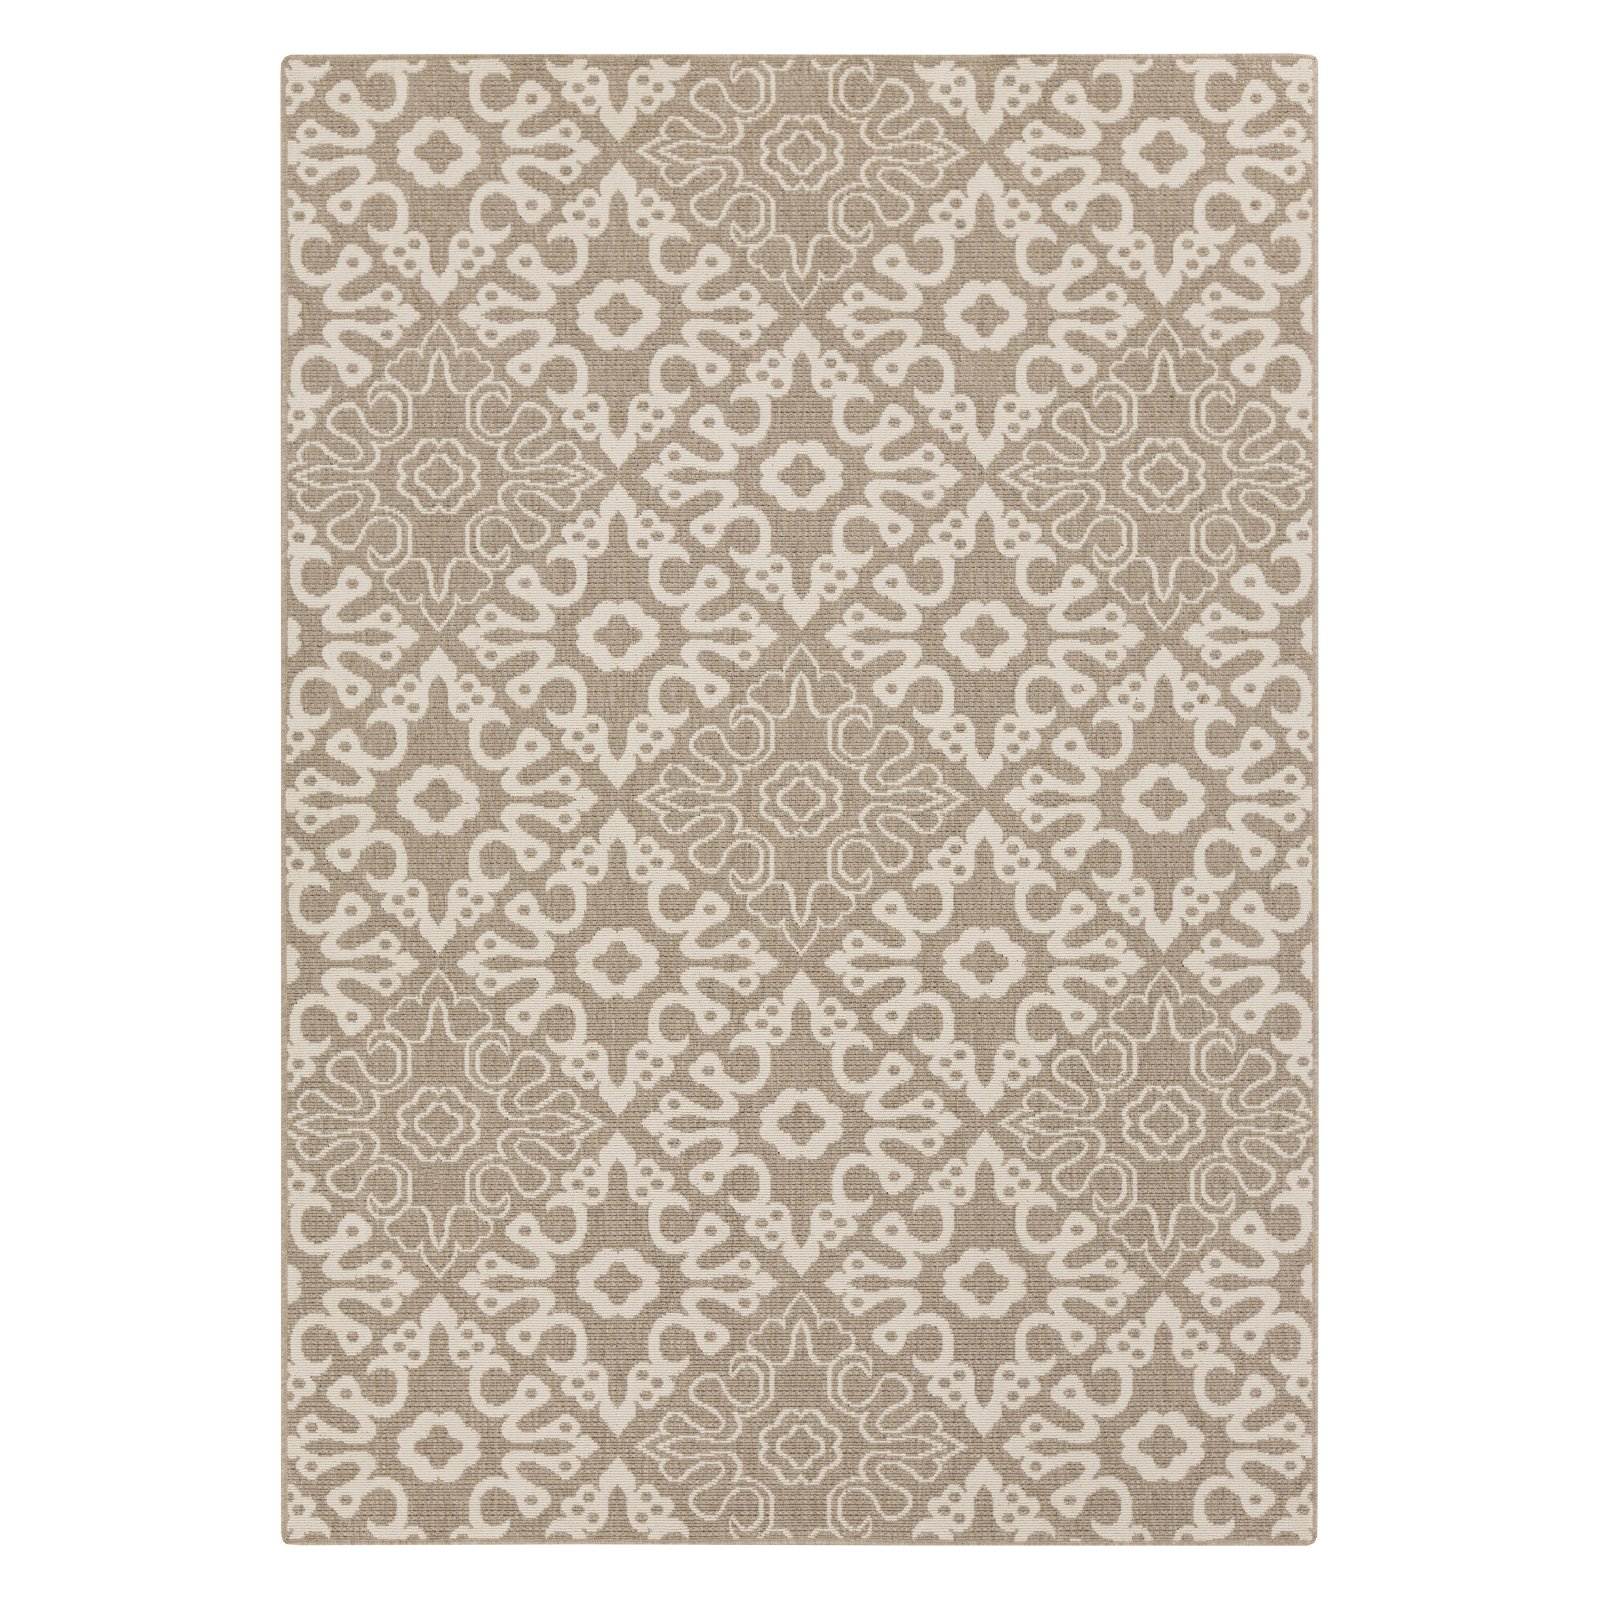 Surya Alfresco ALF963 Indoor / Outdoor Area Rug